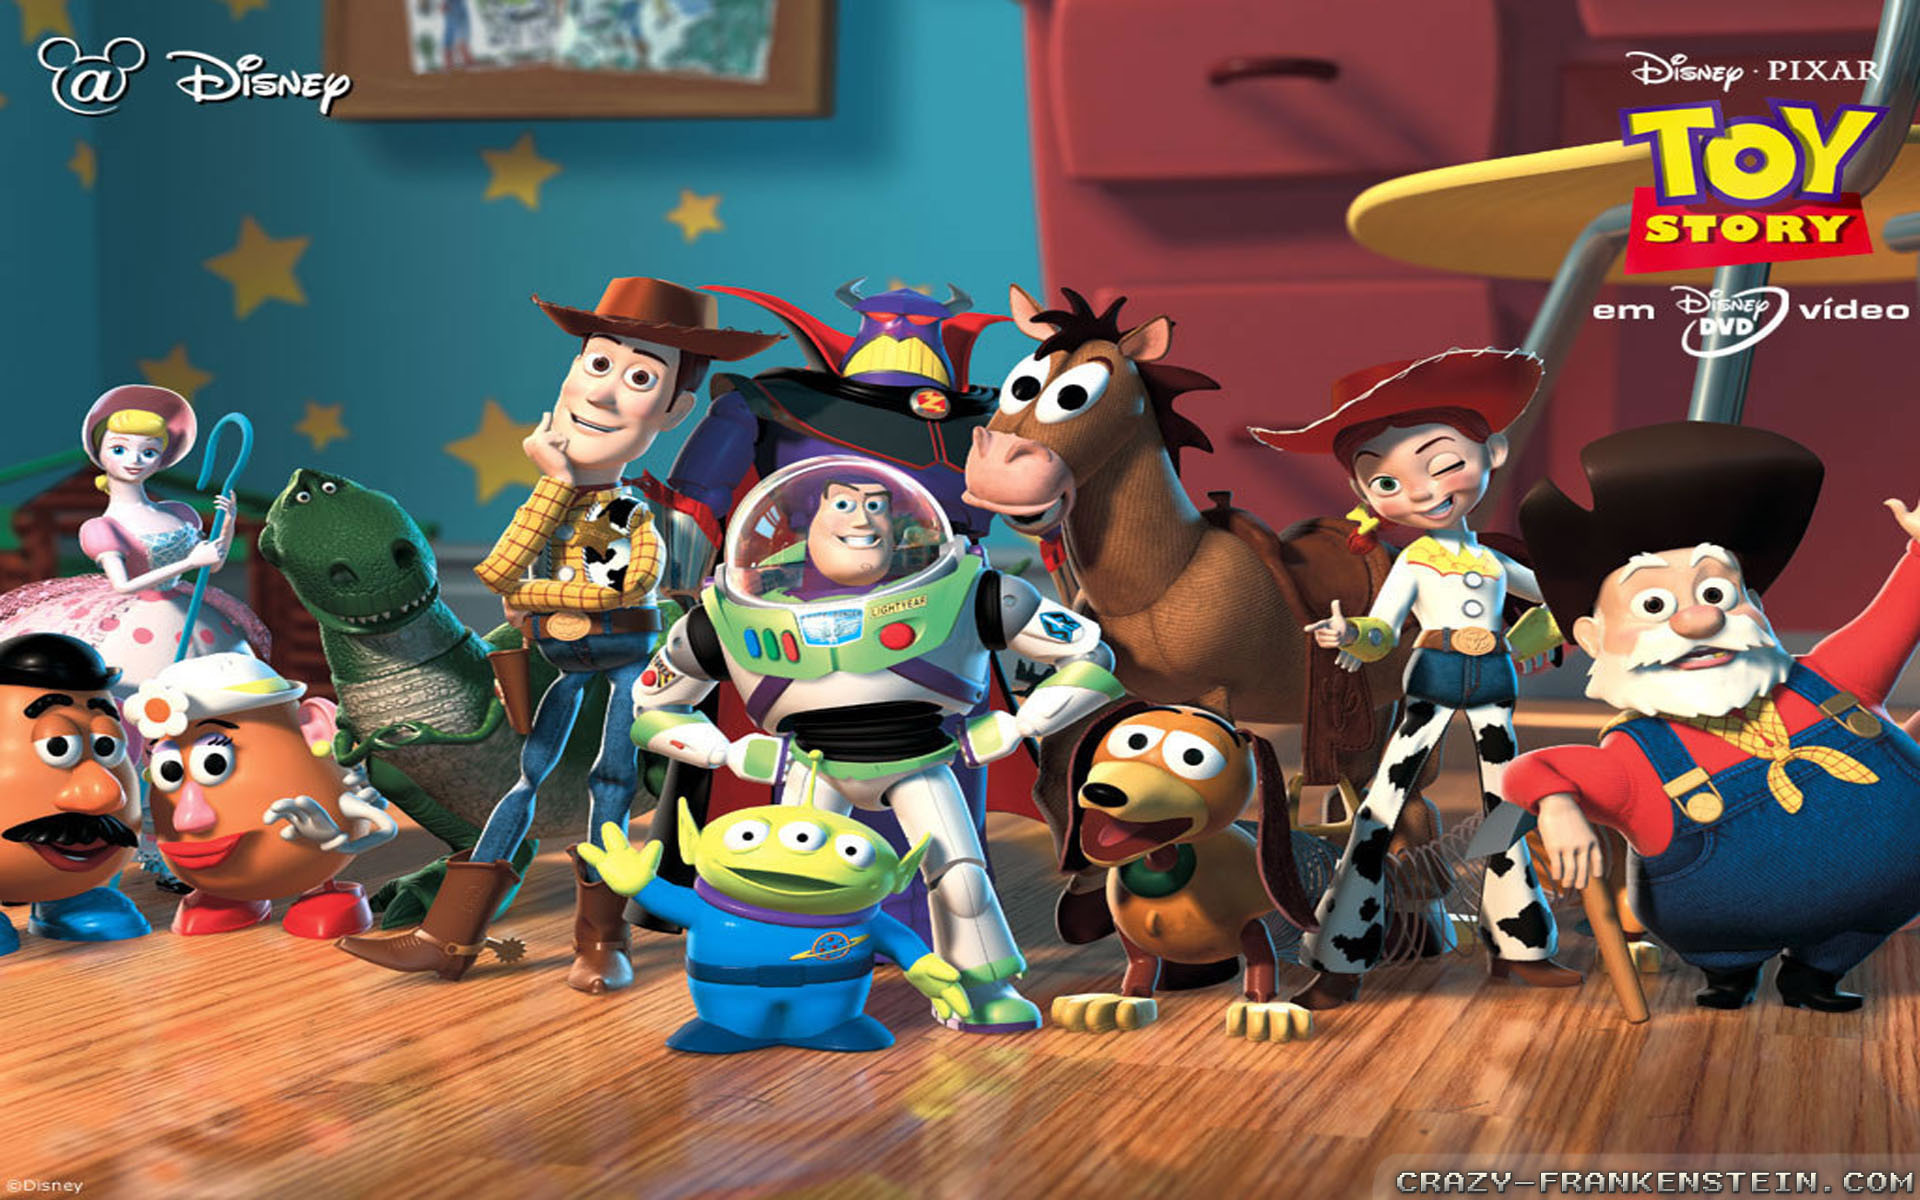 1920x1200 Wallpaper: Pixar Toy Story 3 movie. Resolution: 1024x768 | 1280x1024 |  1600x1200. Widescreen Res: 1440x900 | 1680x1050 |